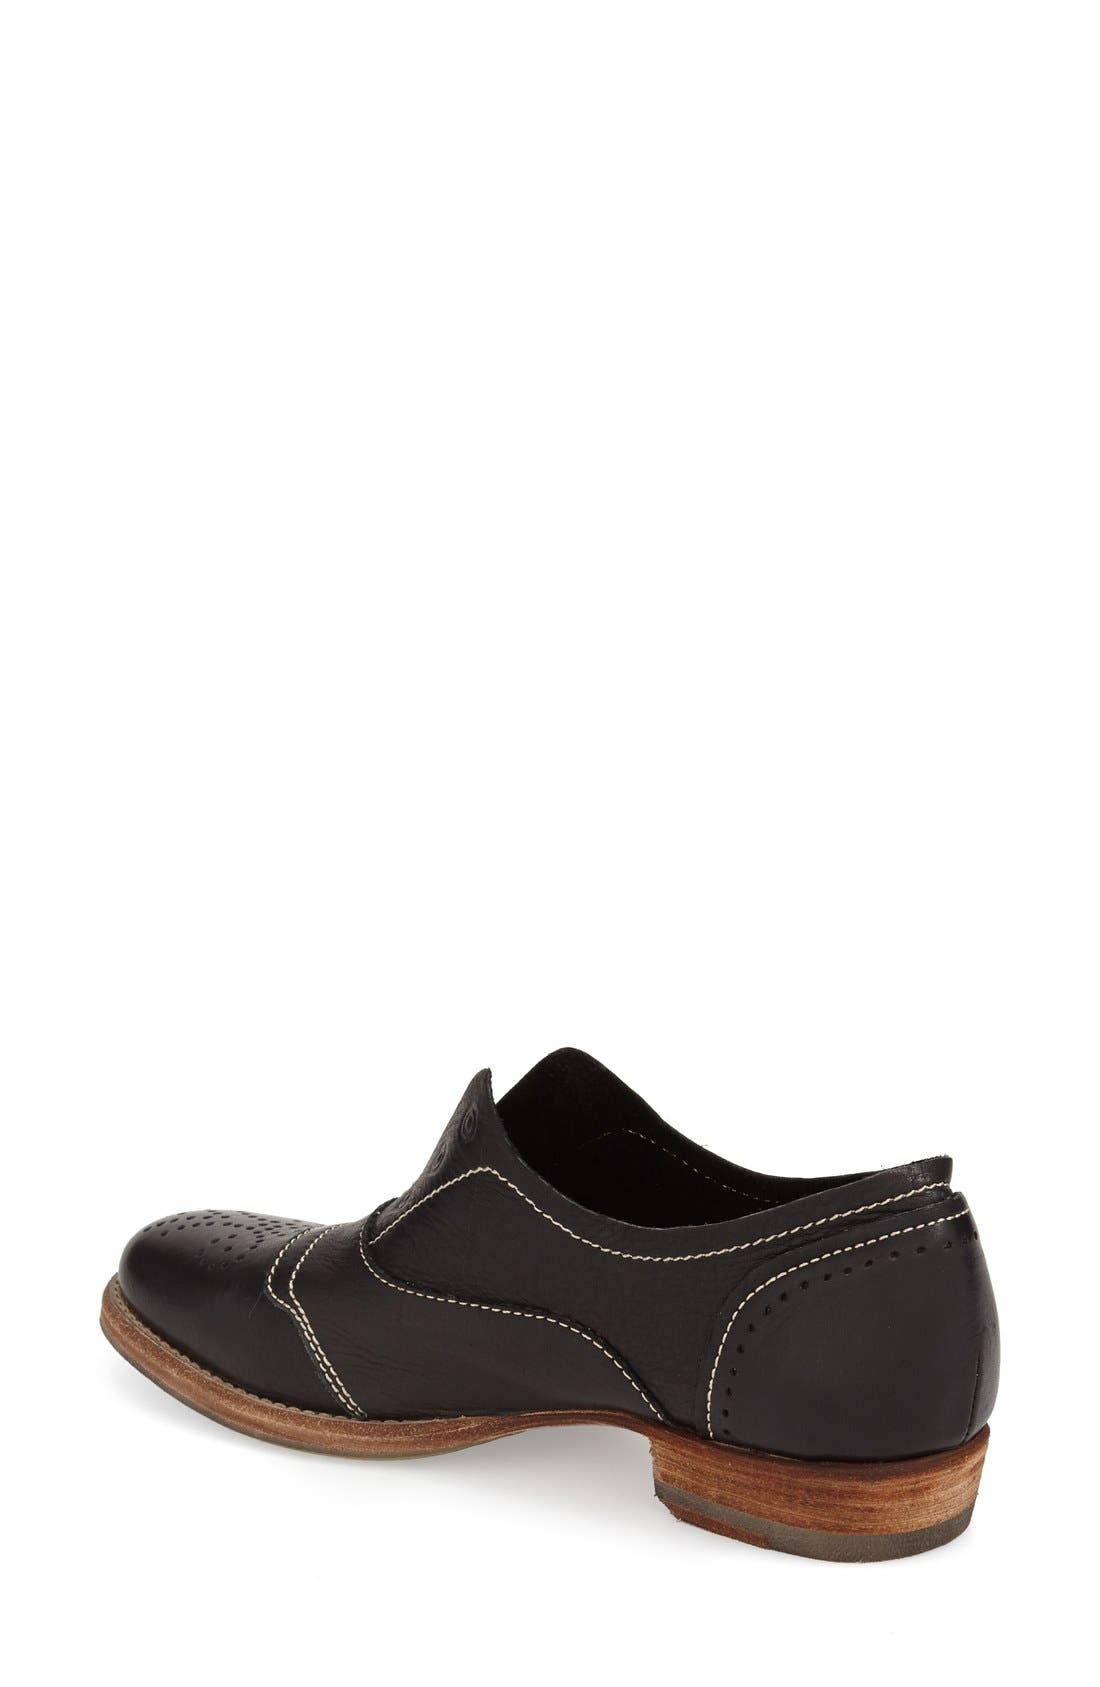 'HL55' Slip-On Oxford,                             Alternate thumbnail 2, color,                             BLACK LEATHER